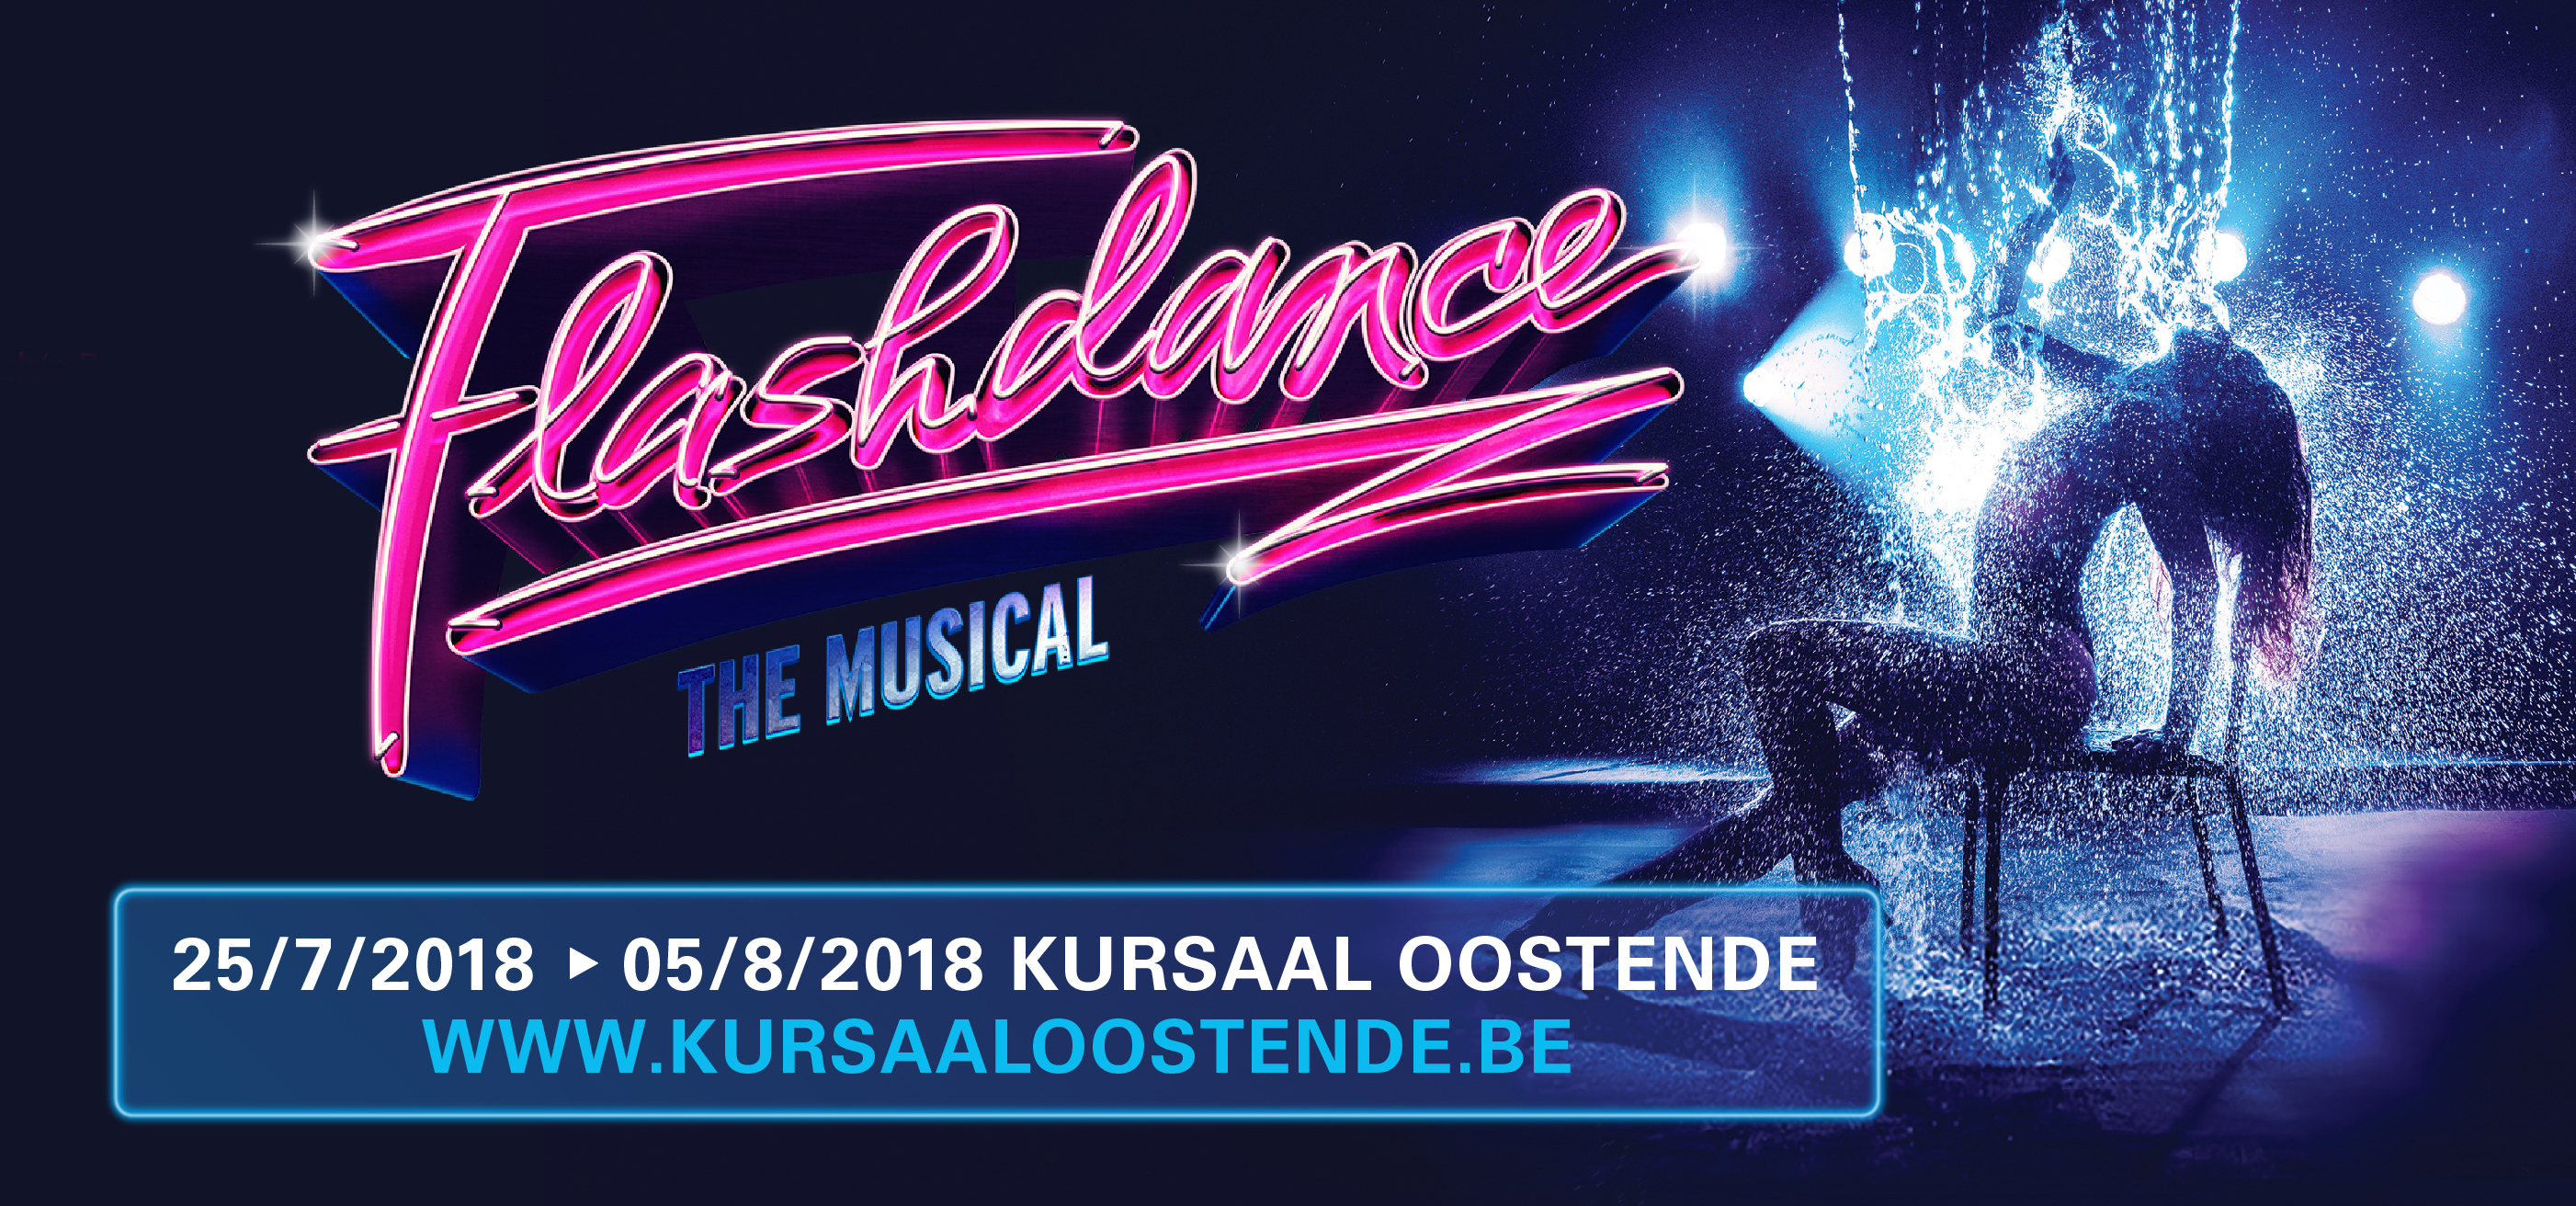 foto: 5 euro korting voor Flashdance The Musical